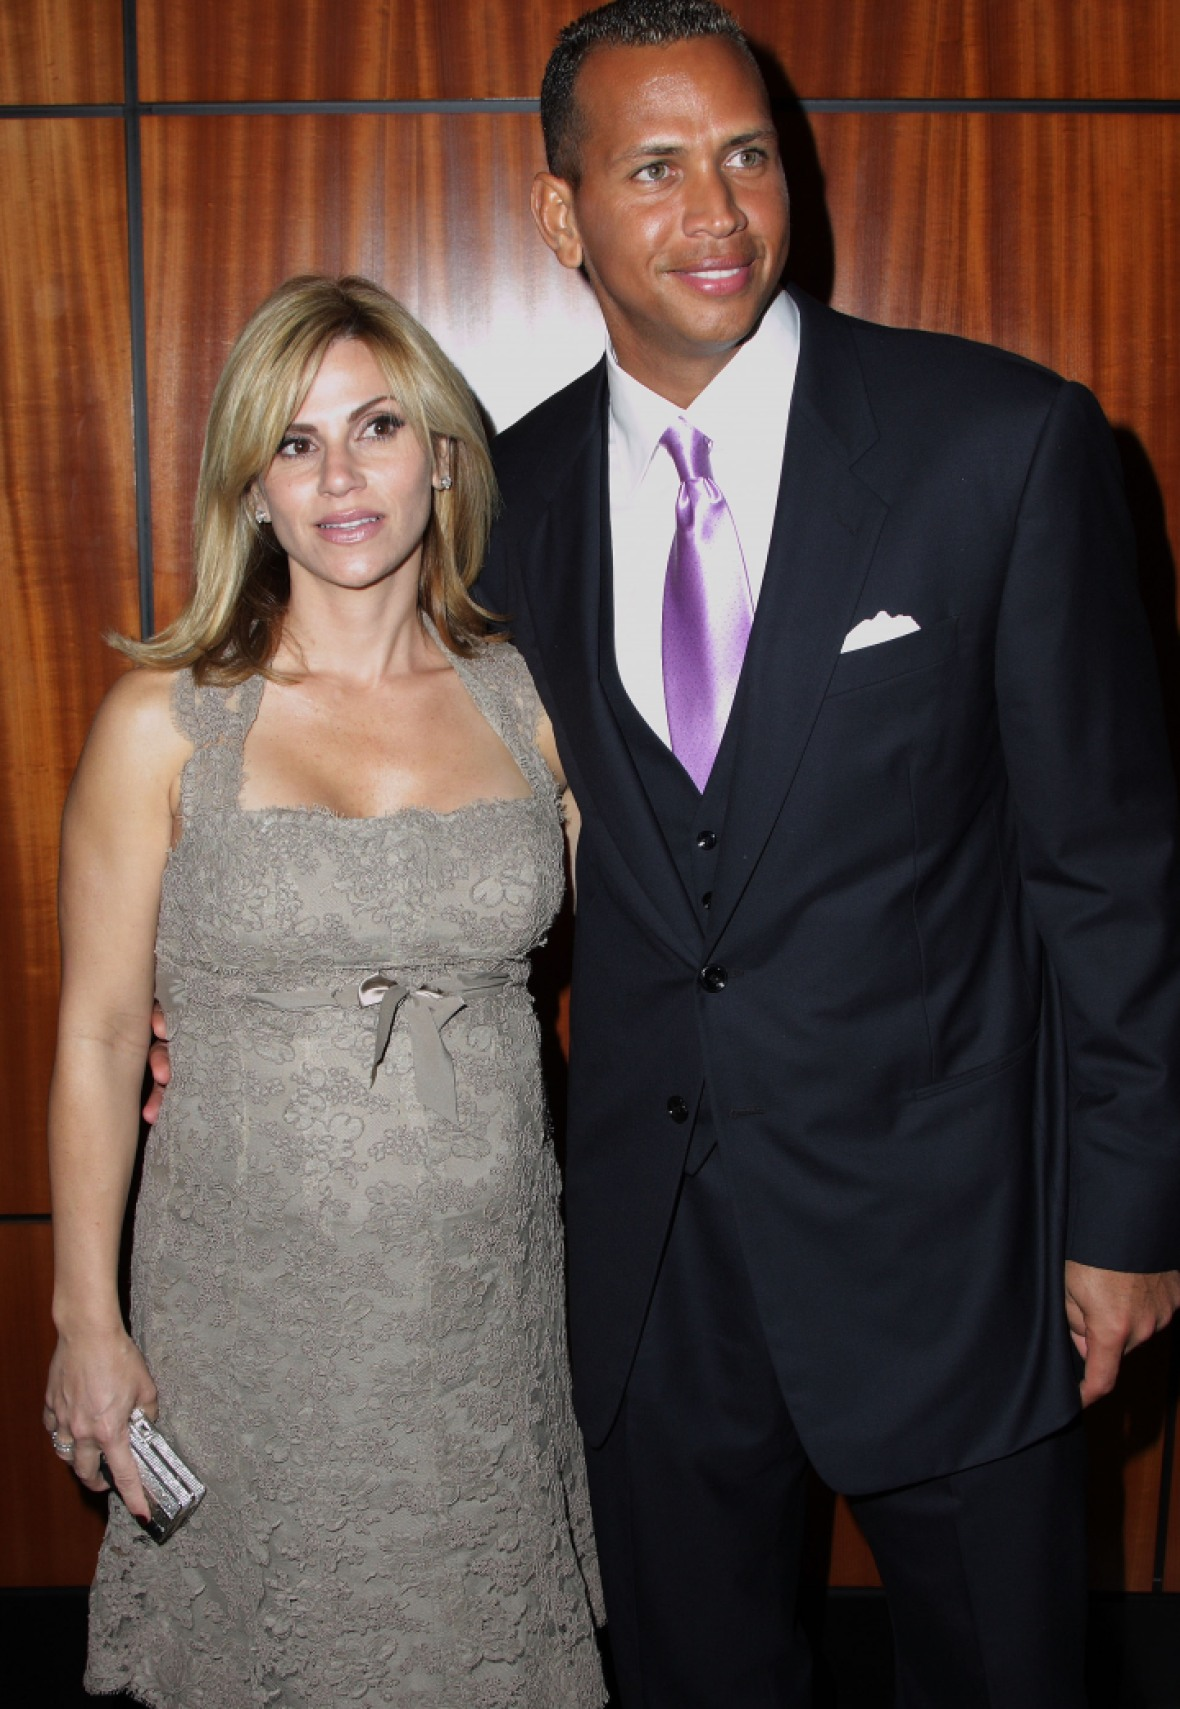 alex rodriguez ex-wife getty images